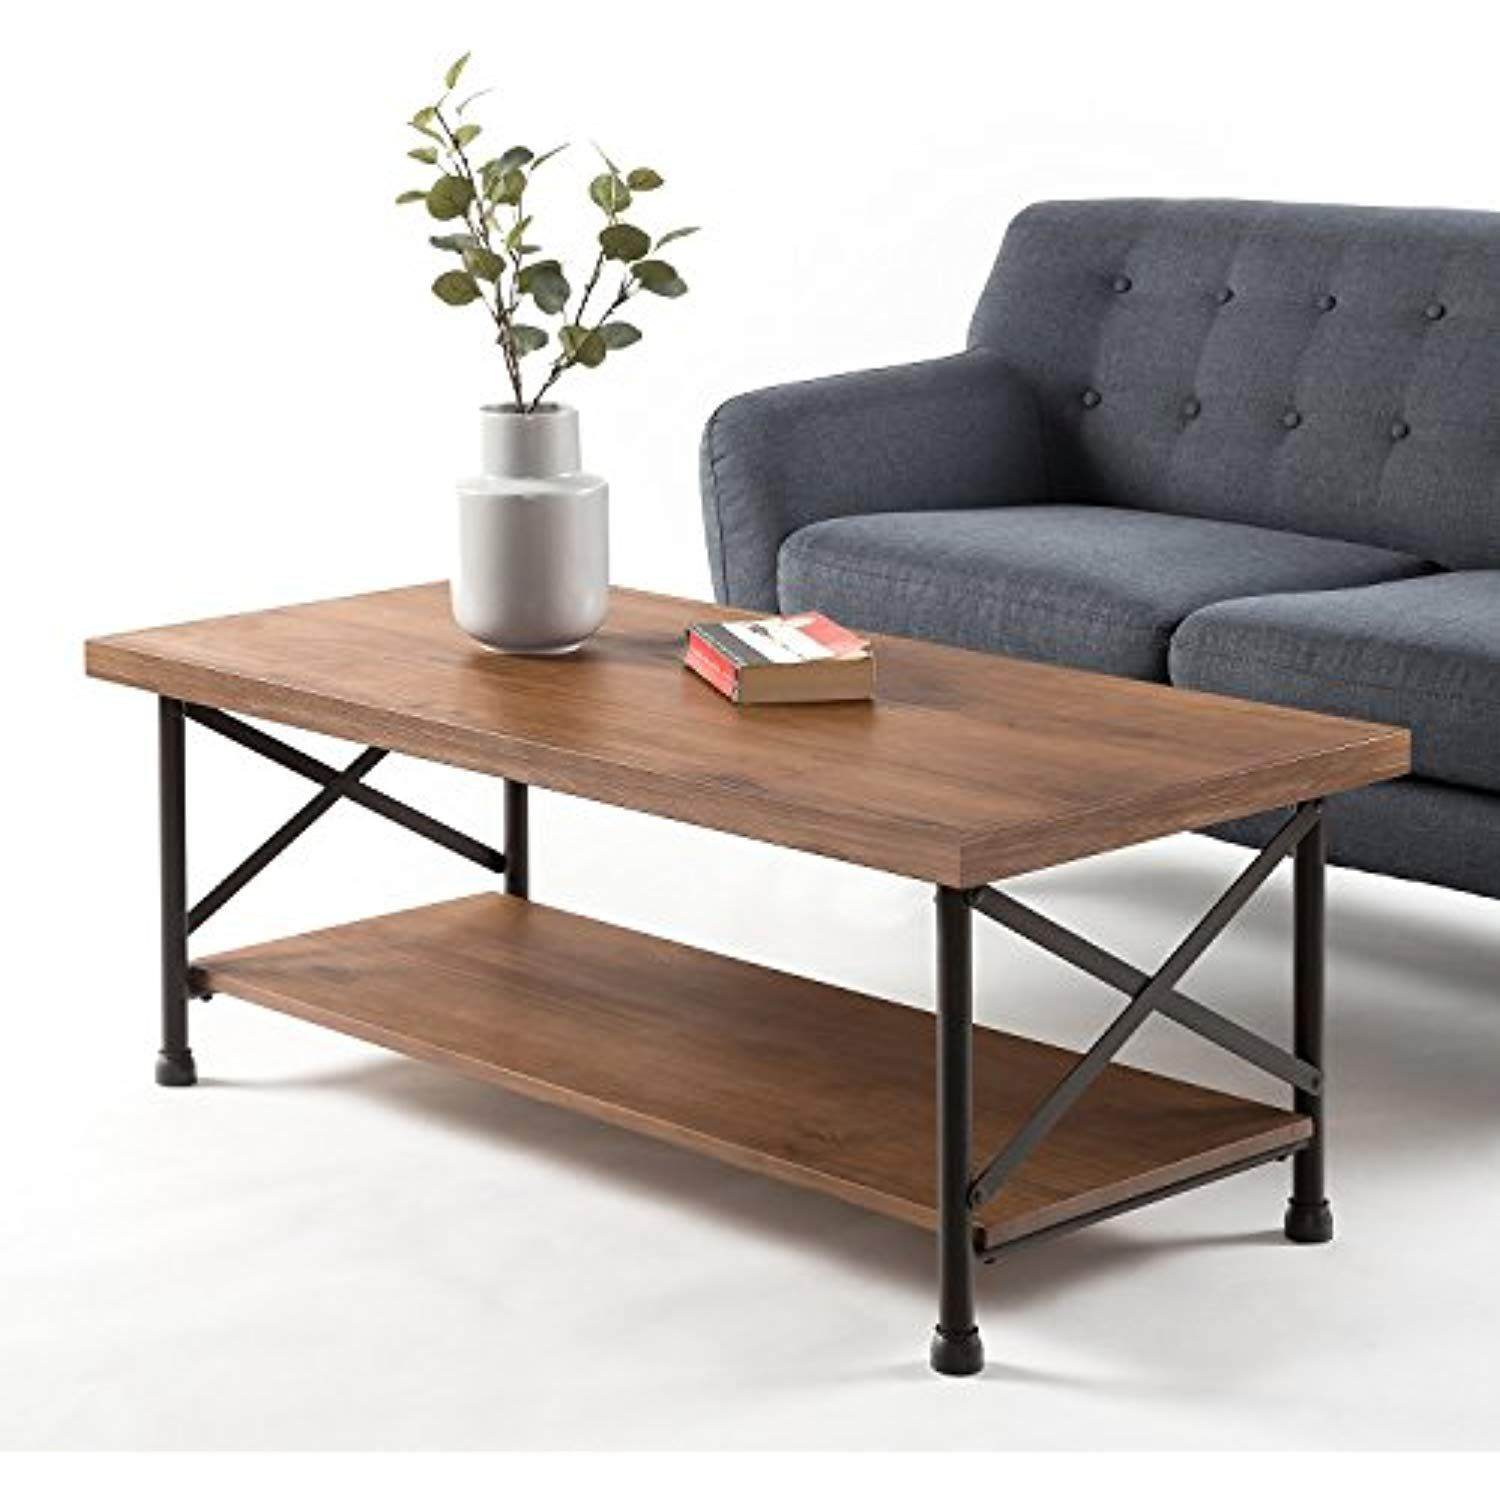 Zinus industrial style coffee table check out the image by